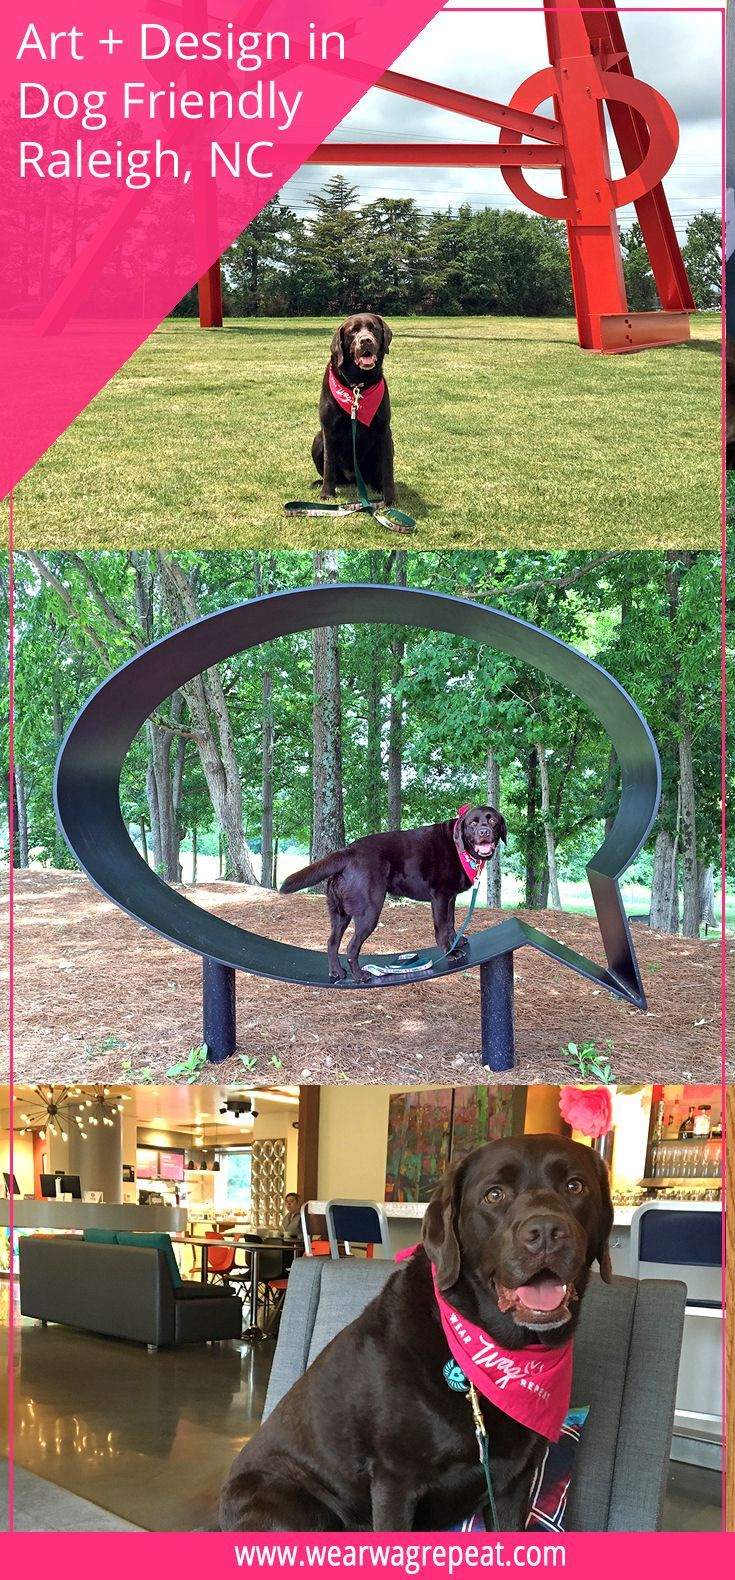 Dog friendly raleigh is full of art and design dog